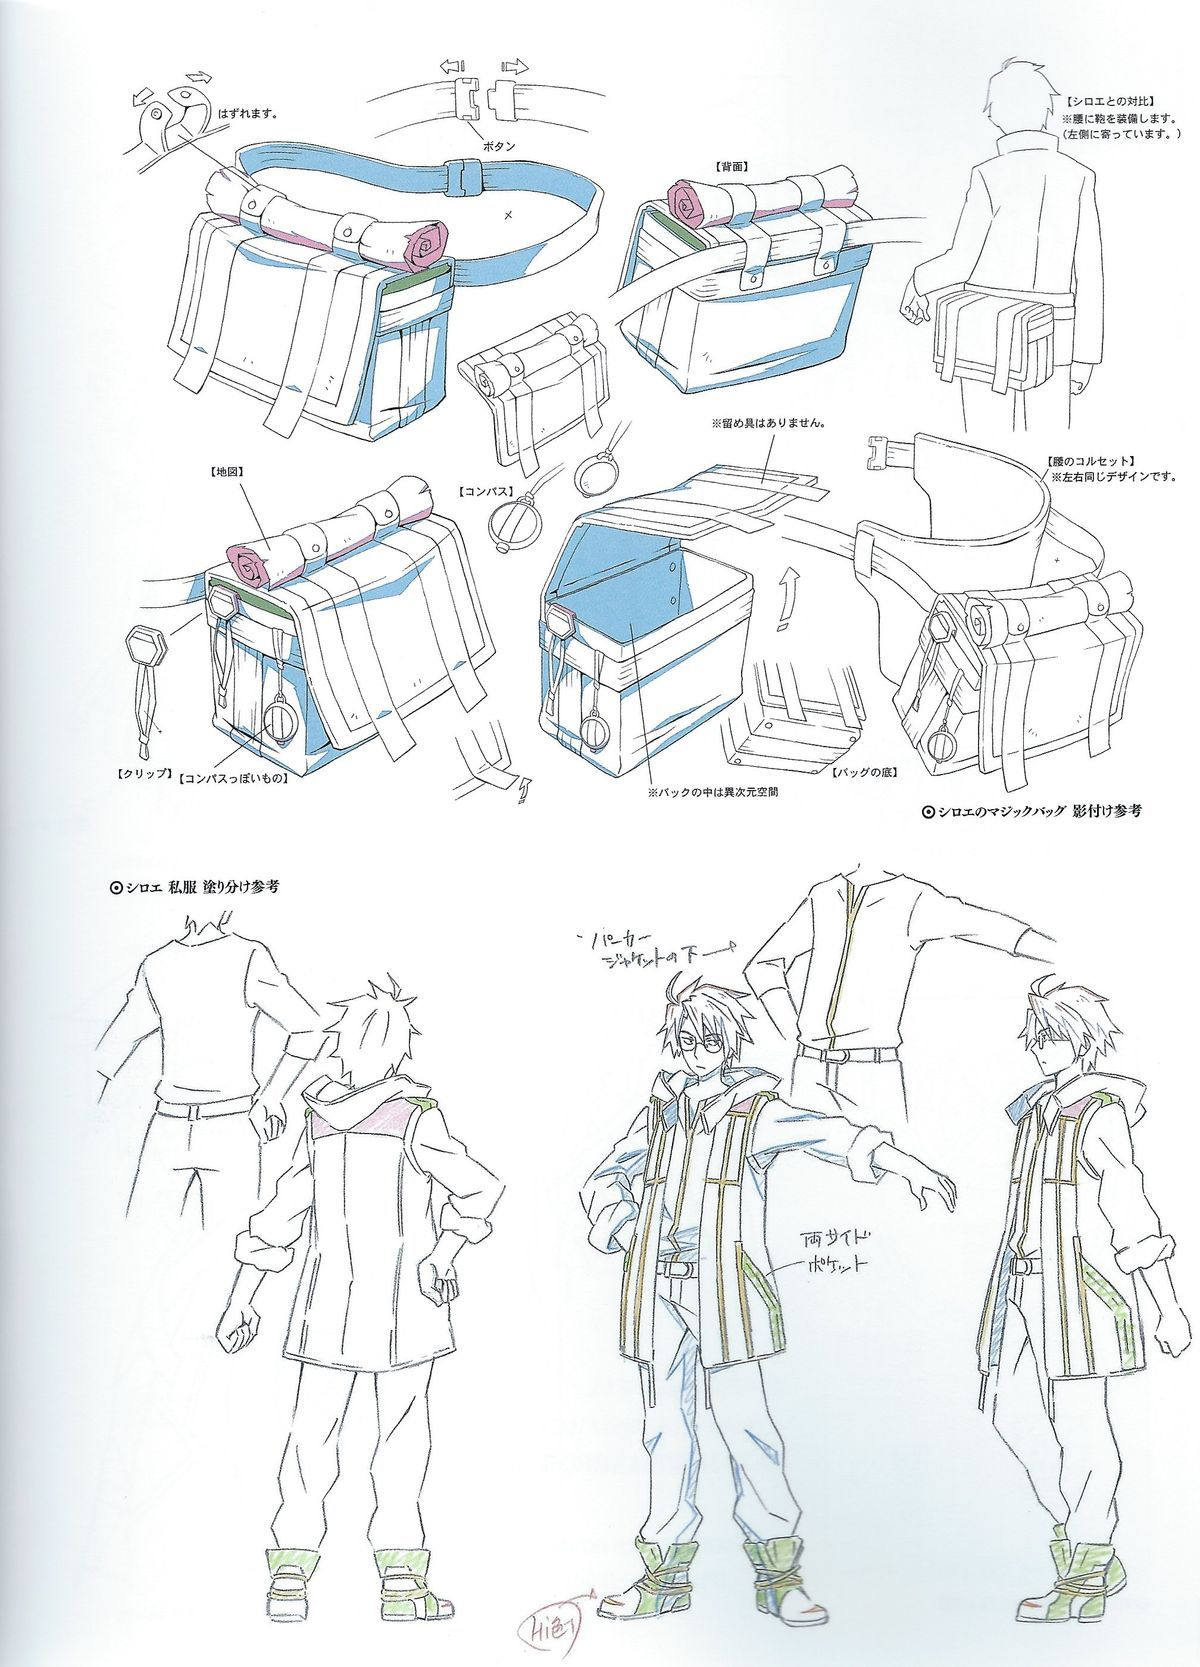 shiroe, notes for cosplaying